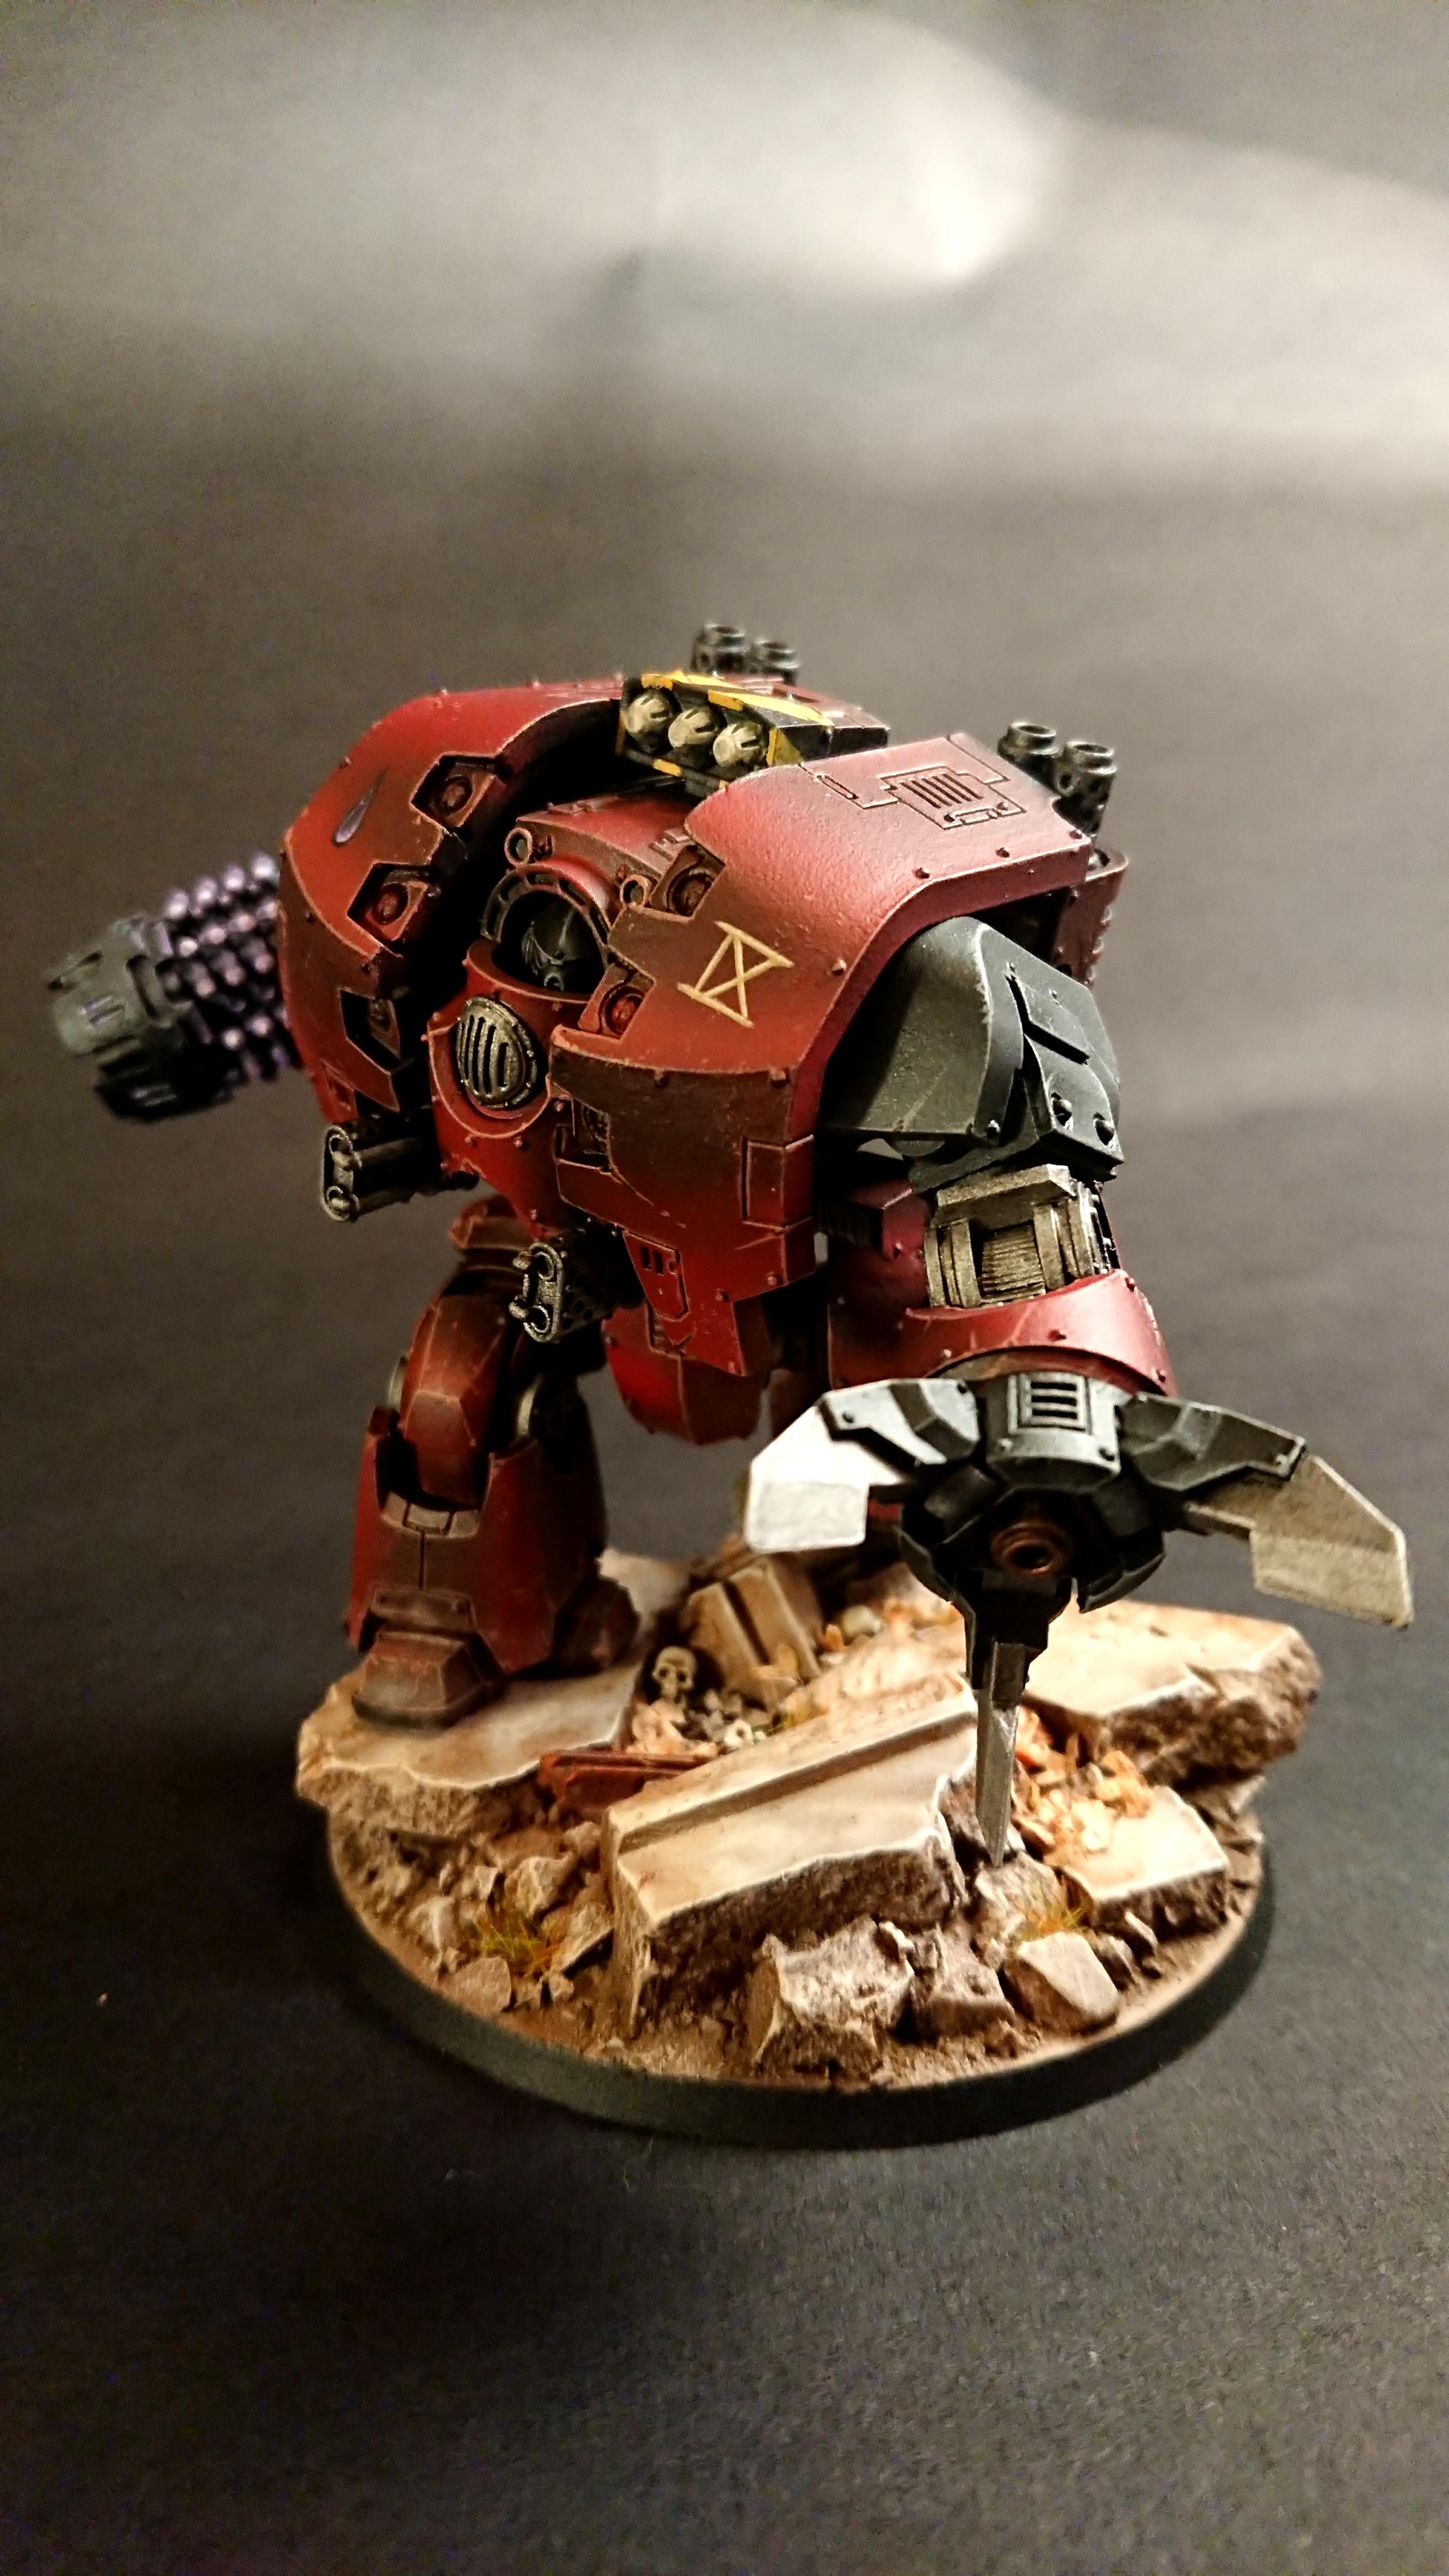 Blood Angels, Dreadnought, Horus Heresy, Leviathan, Space Marines